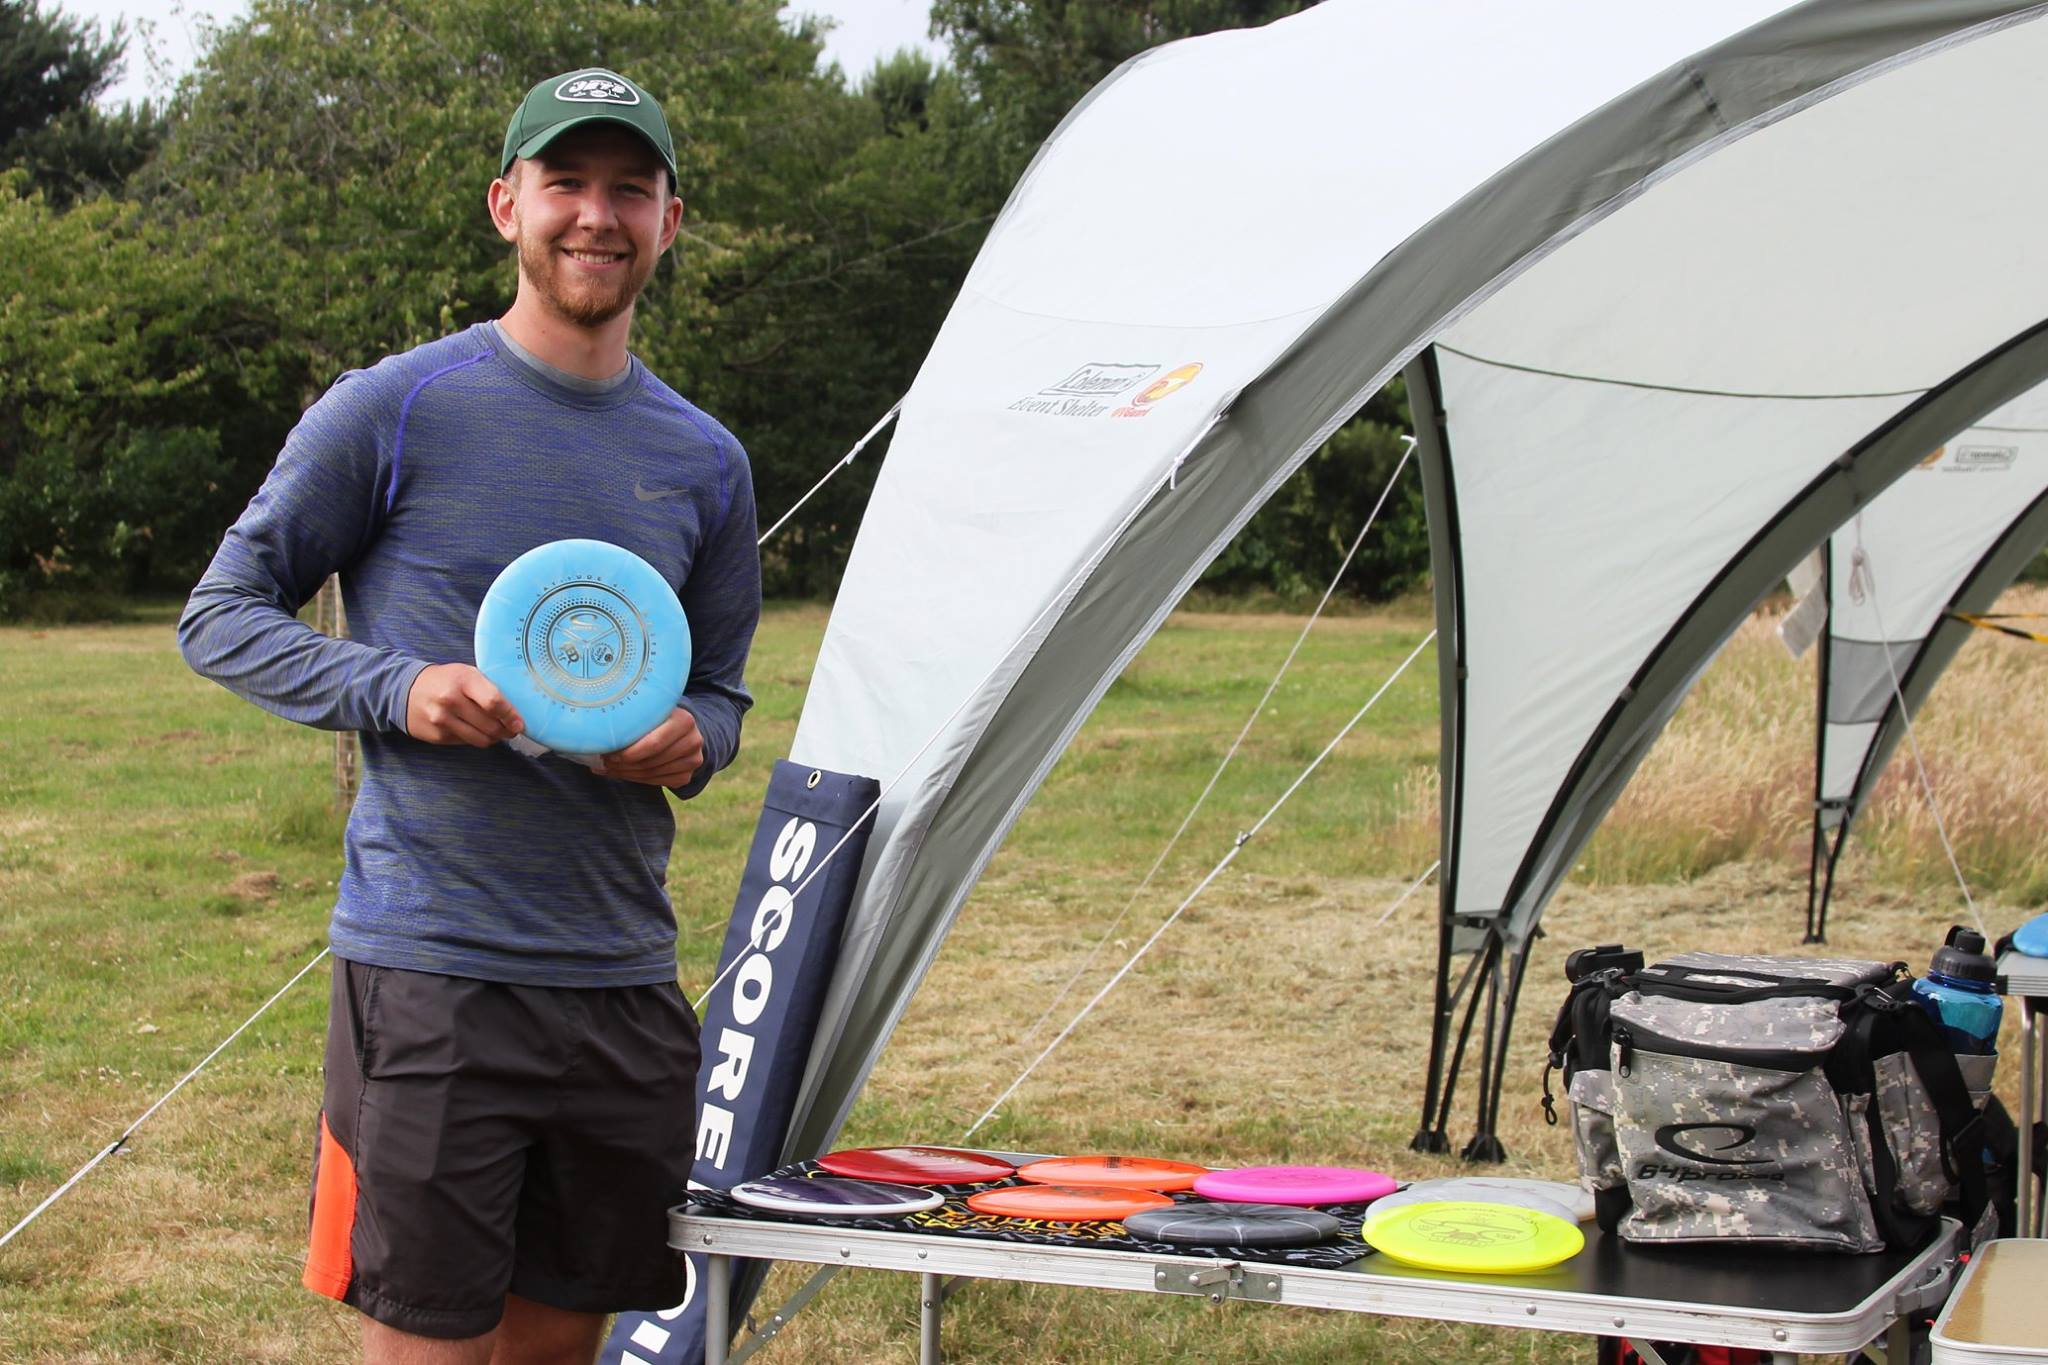 The winner of the Manchester Trilogy Challenge 2018 presented by Manchester Disc Golf and London Disc Golf Community is  Evan Smith  in the MA1/Advance division with a total score of 106.